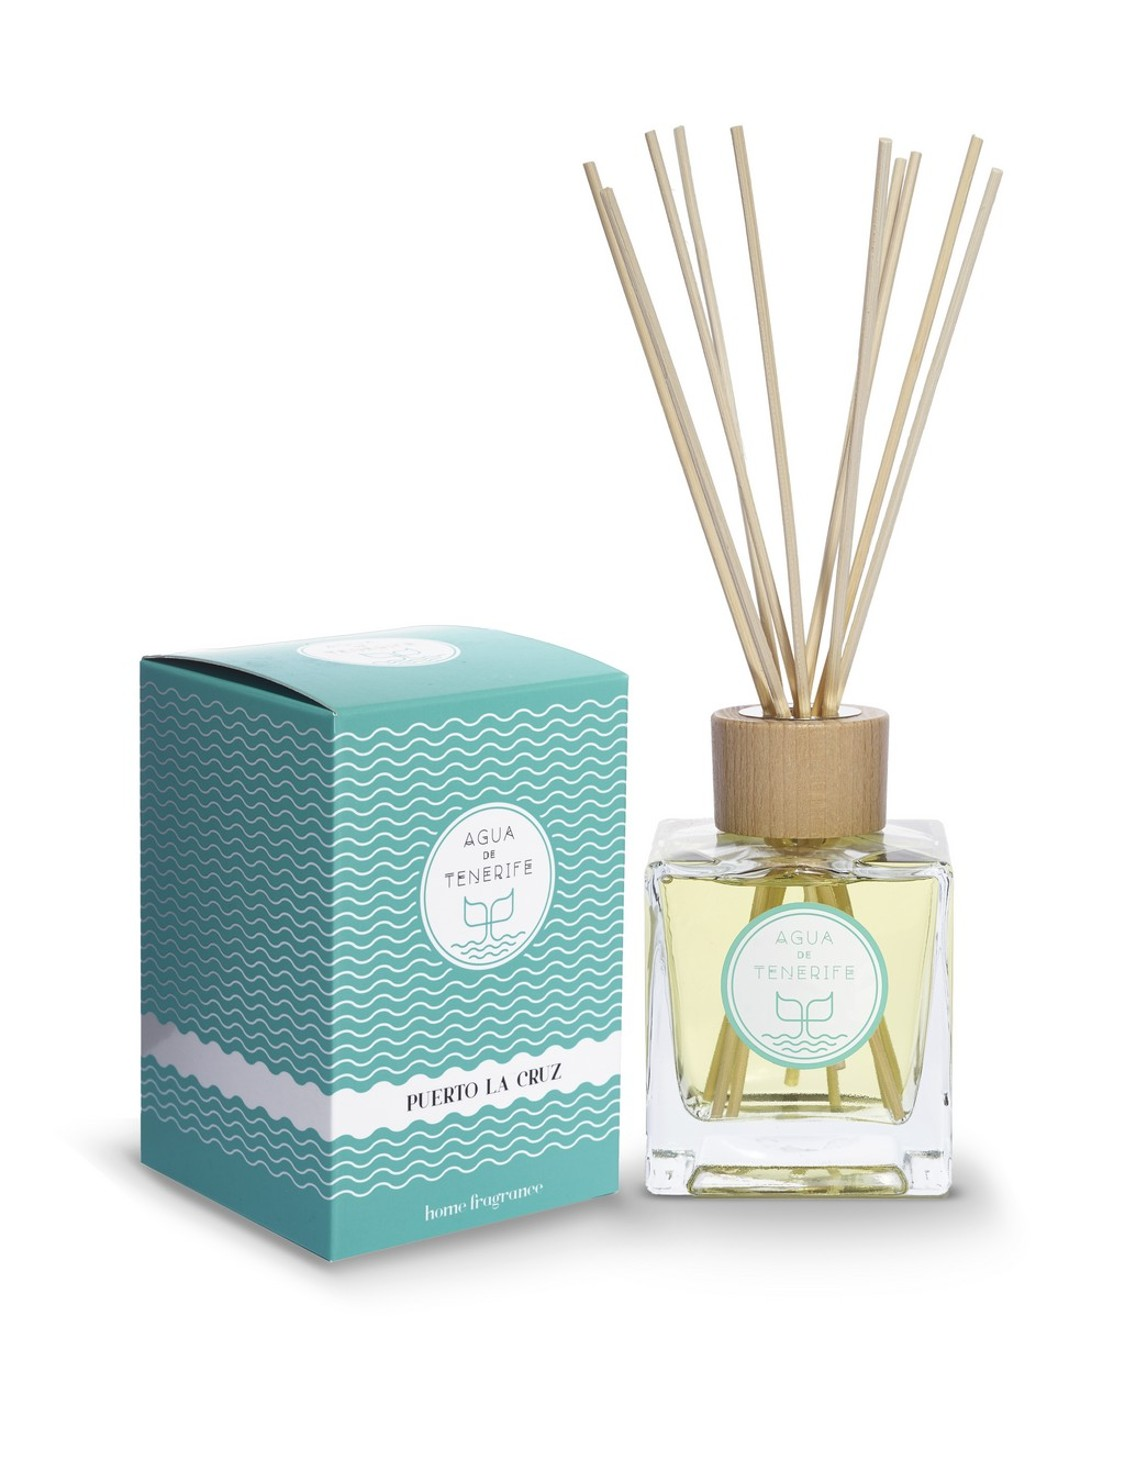 shop Agua de Tenerife  LAS FRAGANCIAS DE LA ISLA: Puerto la Cruz Air Freshner 250 ml.                